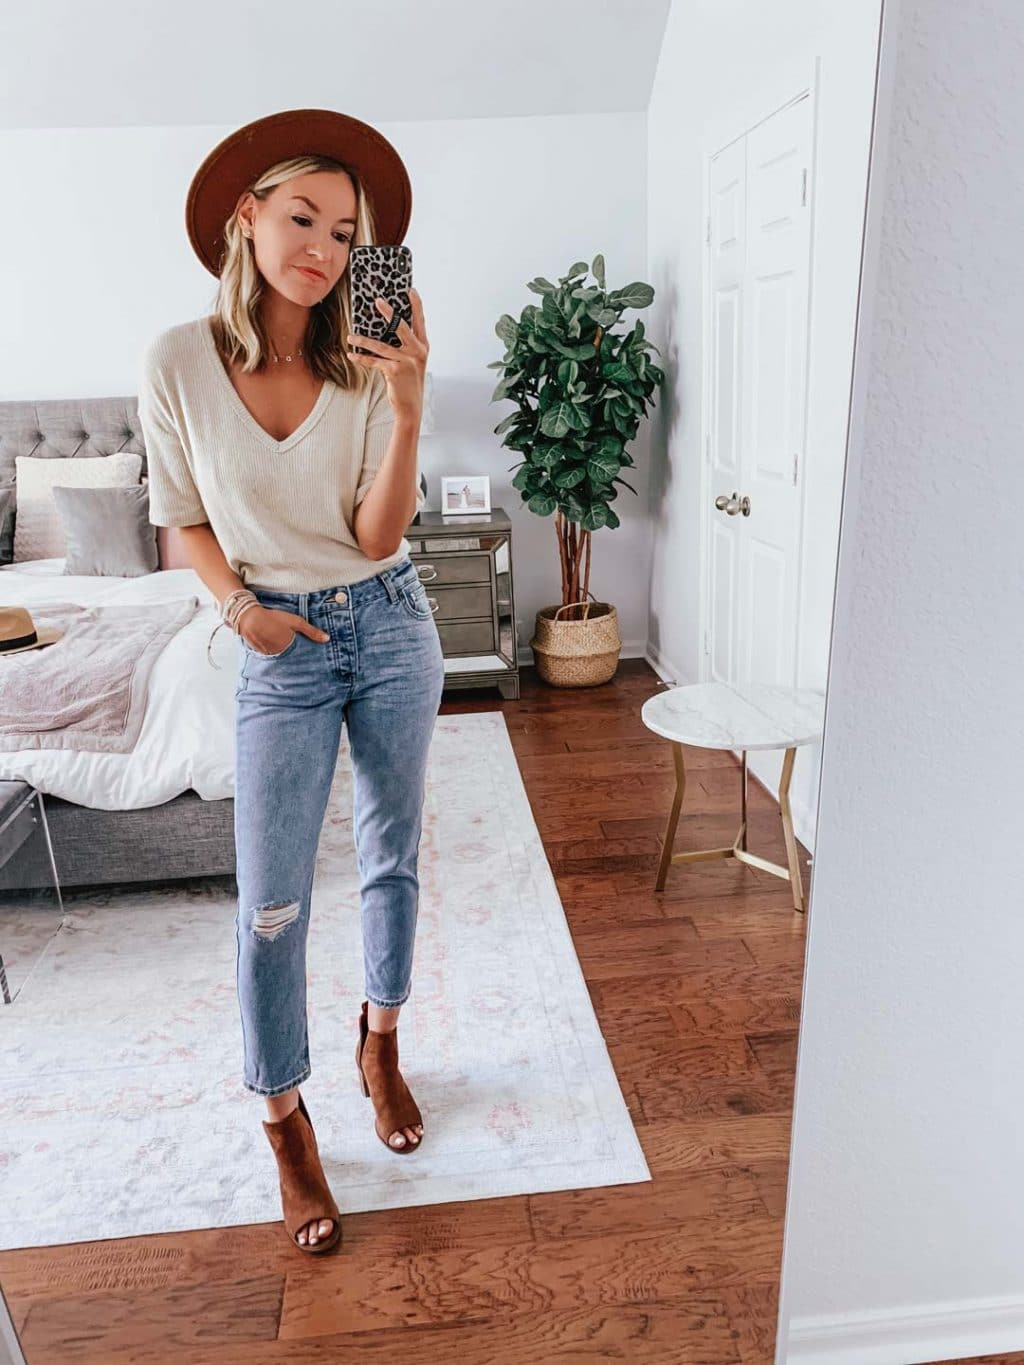 aa60e67a2f270 Life By Lee - Austin Fashion Blogger - Austin Mommy and Lifestyle ...